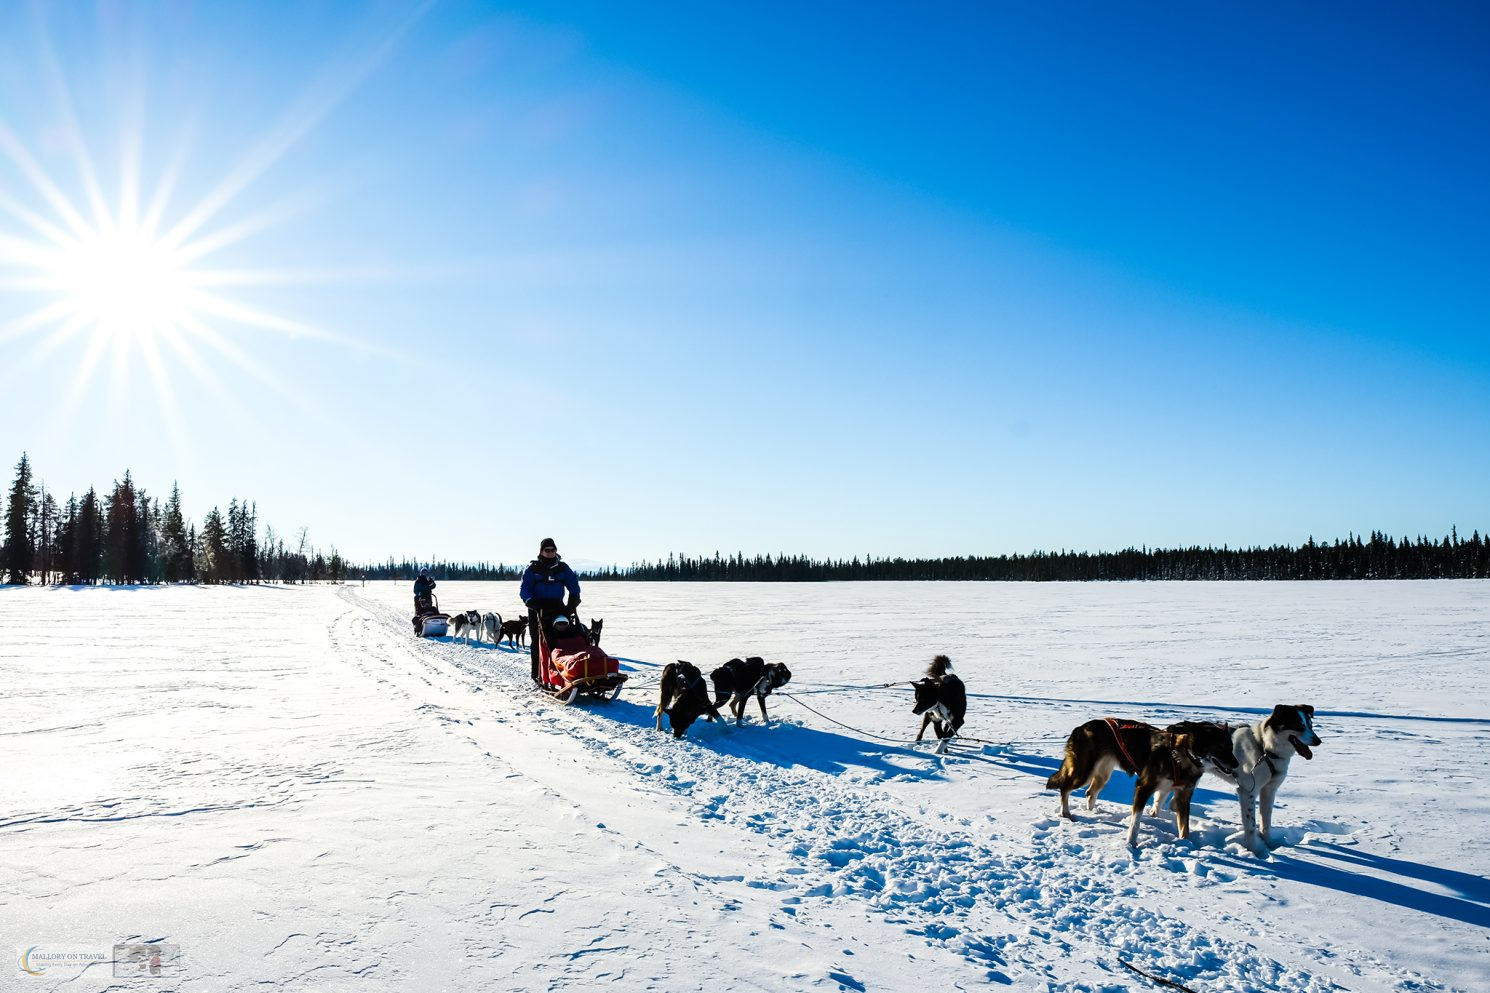 Sled dogs and dog sledding in Lappeasuando in the Swedish Lapland, within the Arctic Circle in the north of Sweden on Mallory on Travel adventure travel, photography, travel Iain Mallory_Lapland-1-245